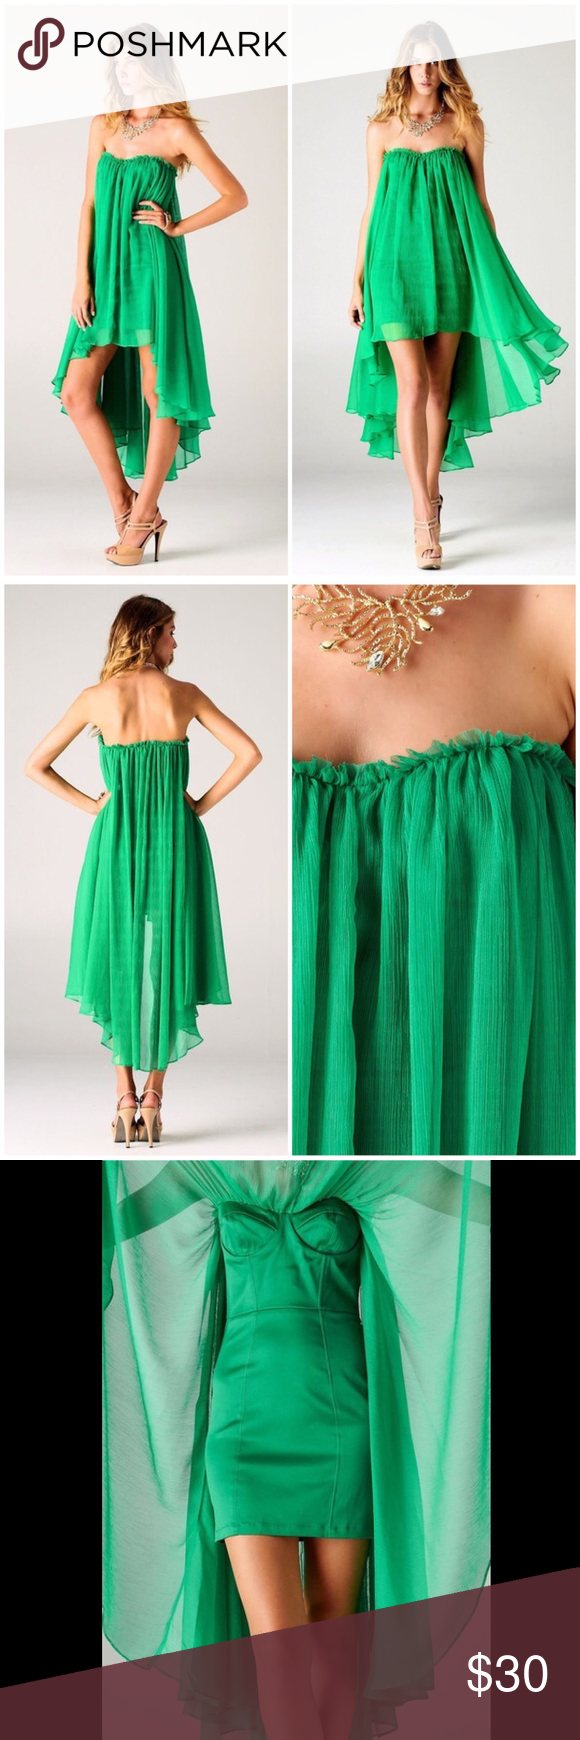 ea4628c9eac Blaque Label chiffon high-low dress Stunning emerald green - one of the  hardest colors